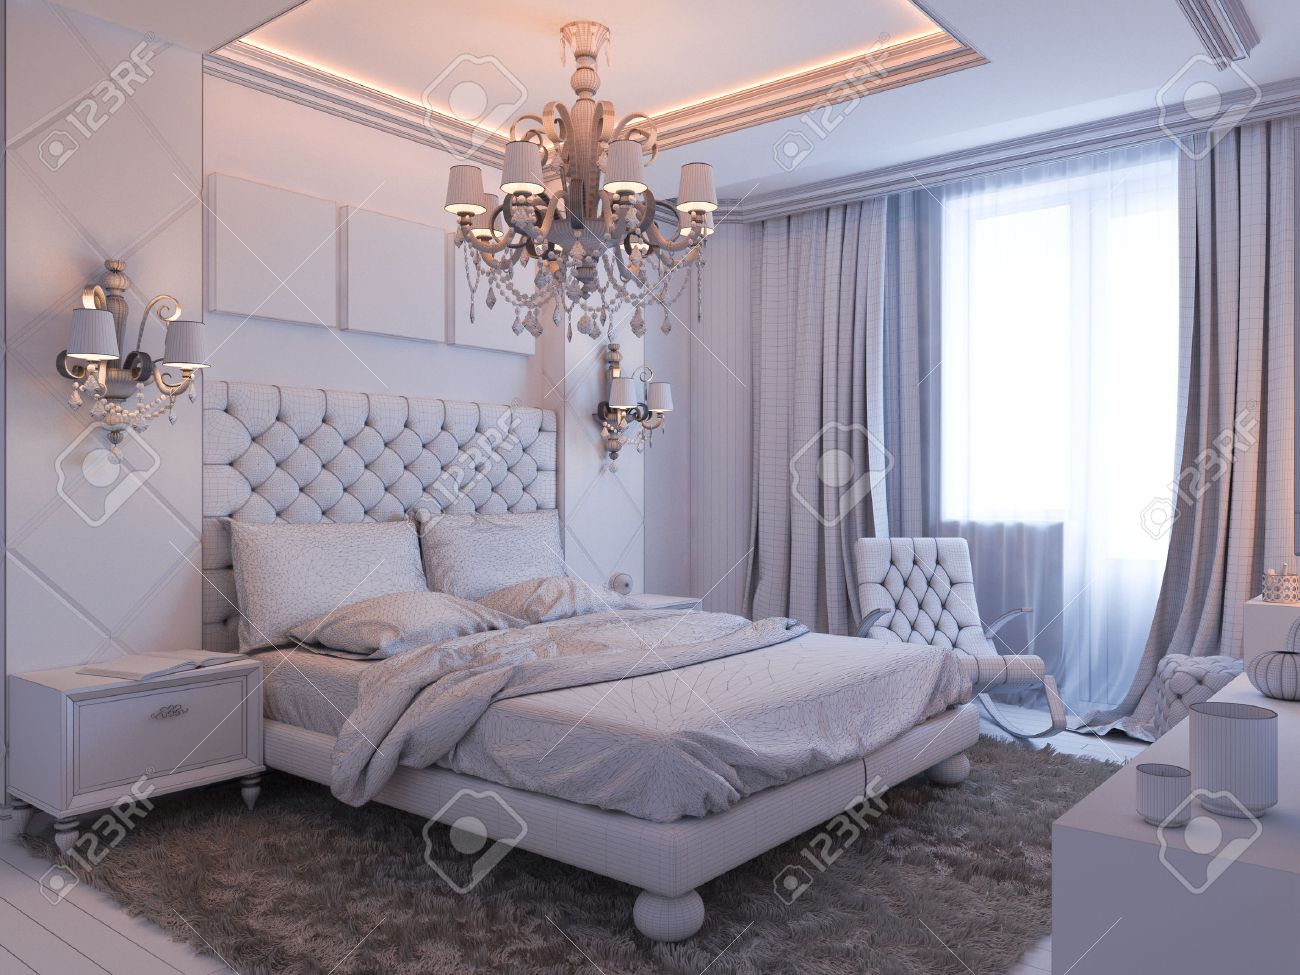 3d Illustration Of Bedroom Interior Design In A Modern Classic Style.  Bedroom Displayed In The